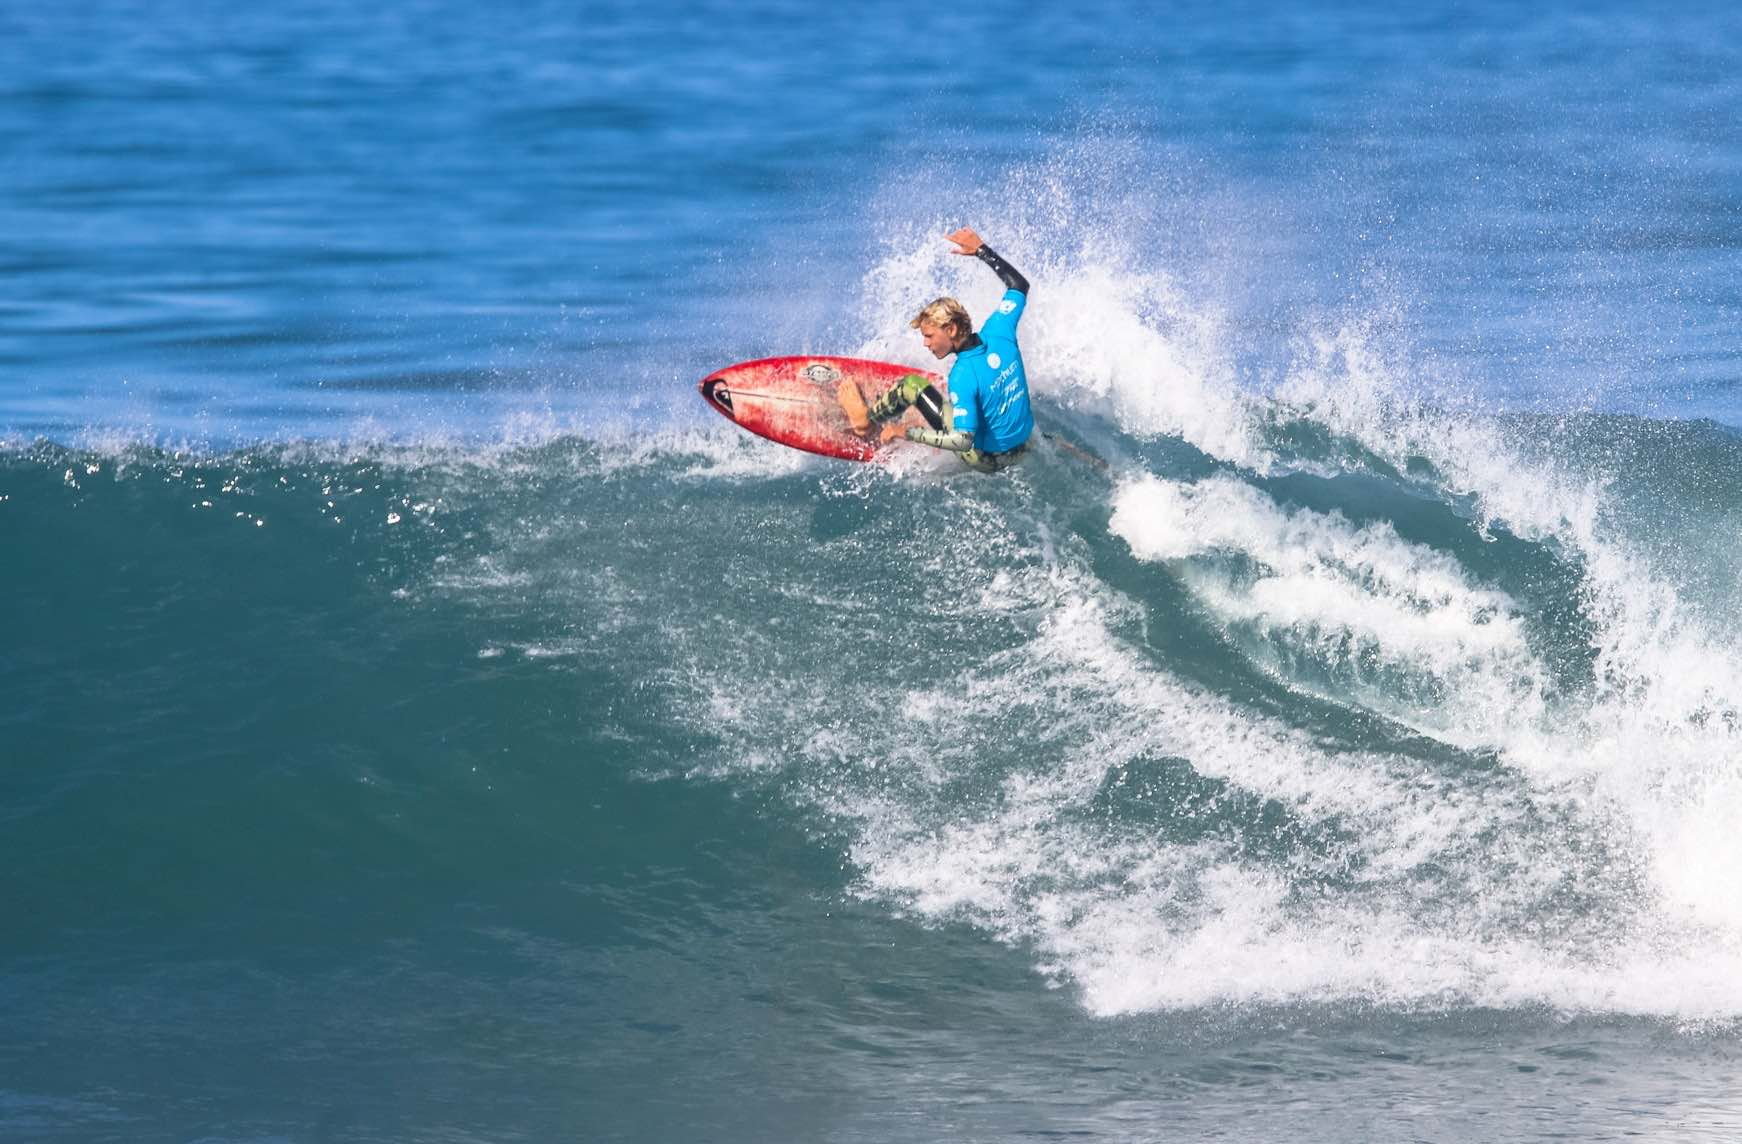 Luke Thompson surfing his way to victory at the Mitchum Buffalo City Surf Pro